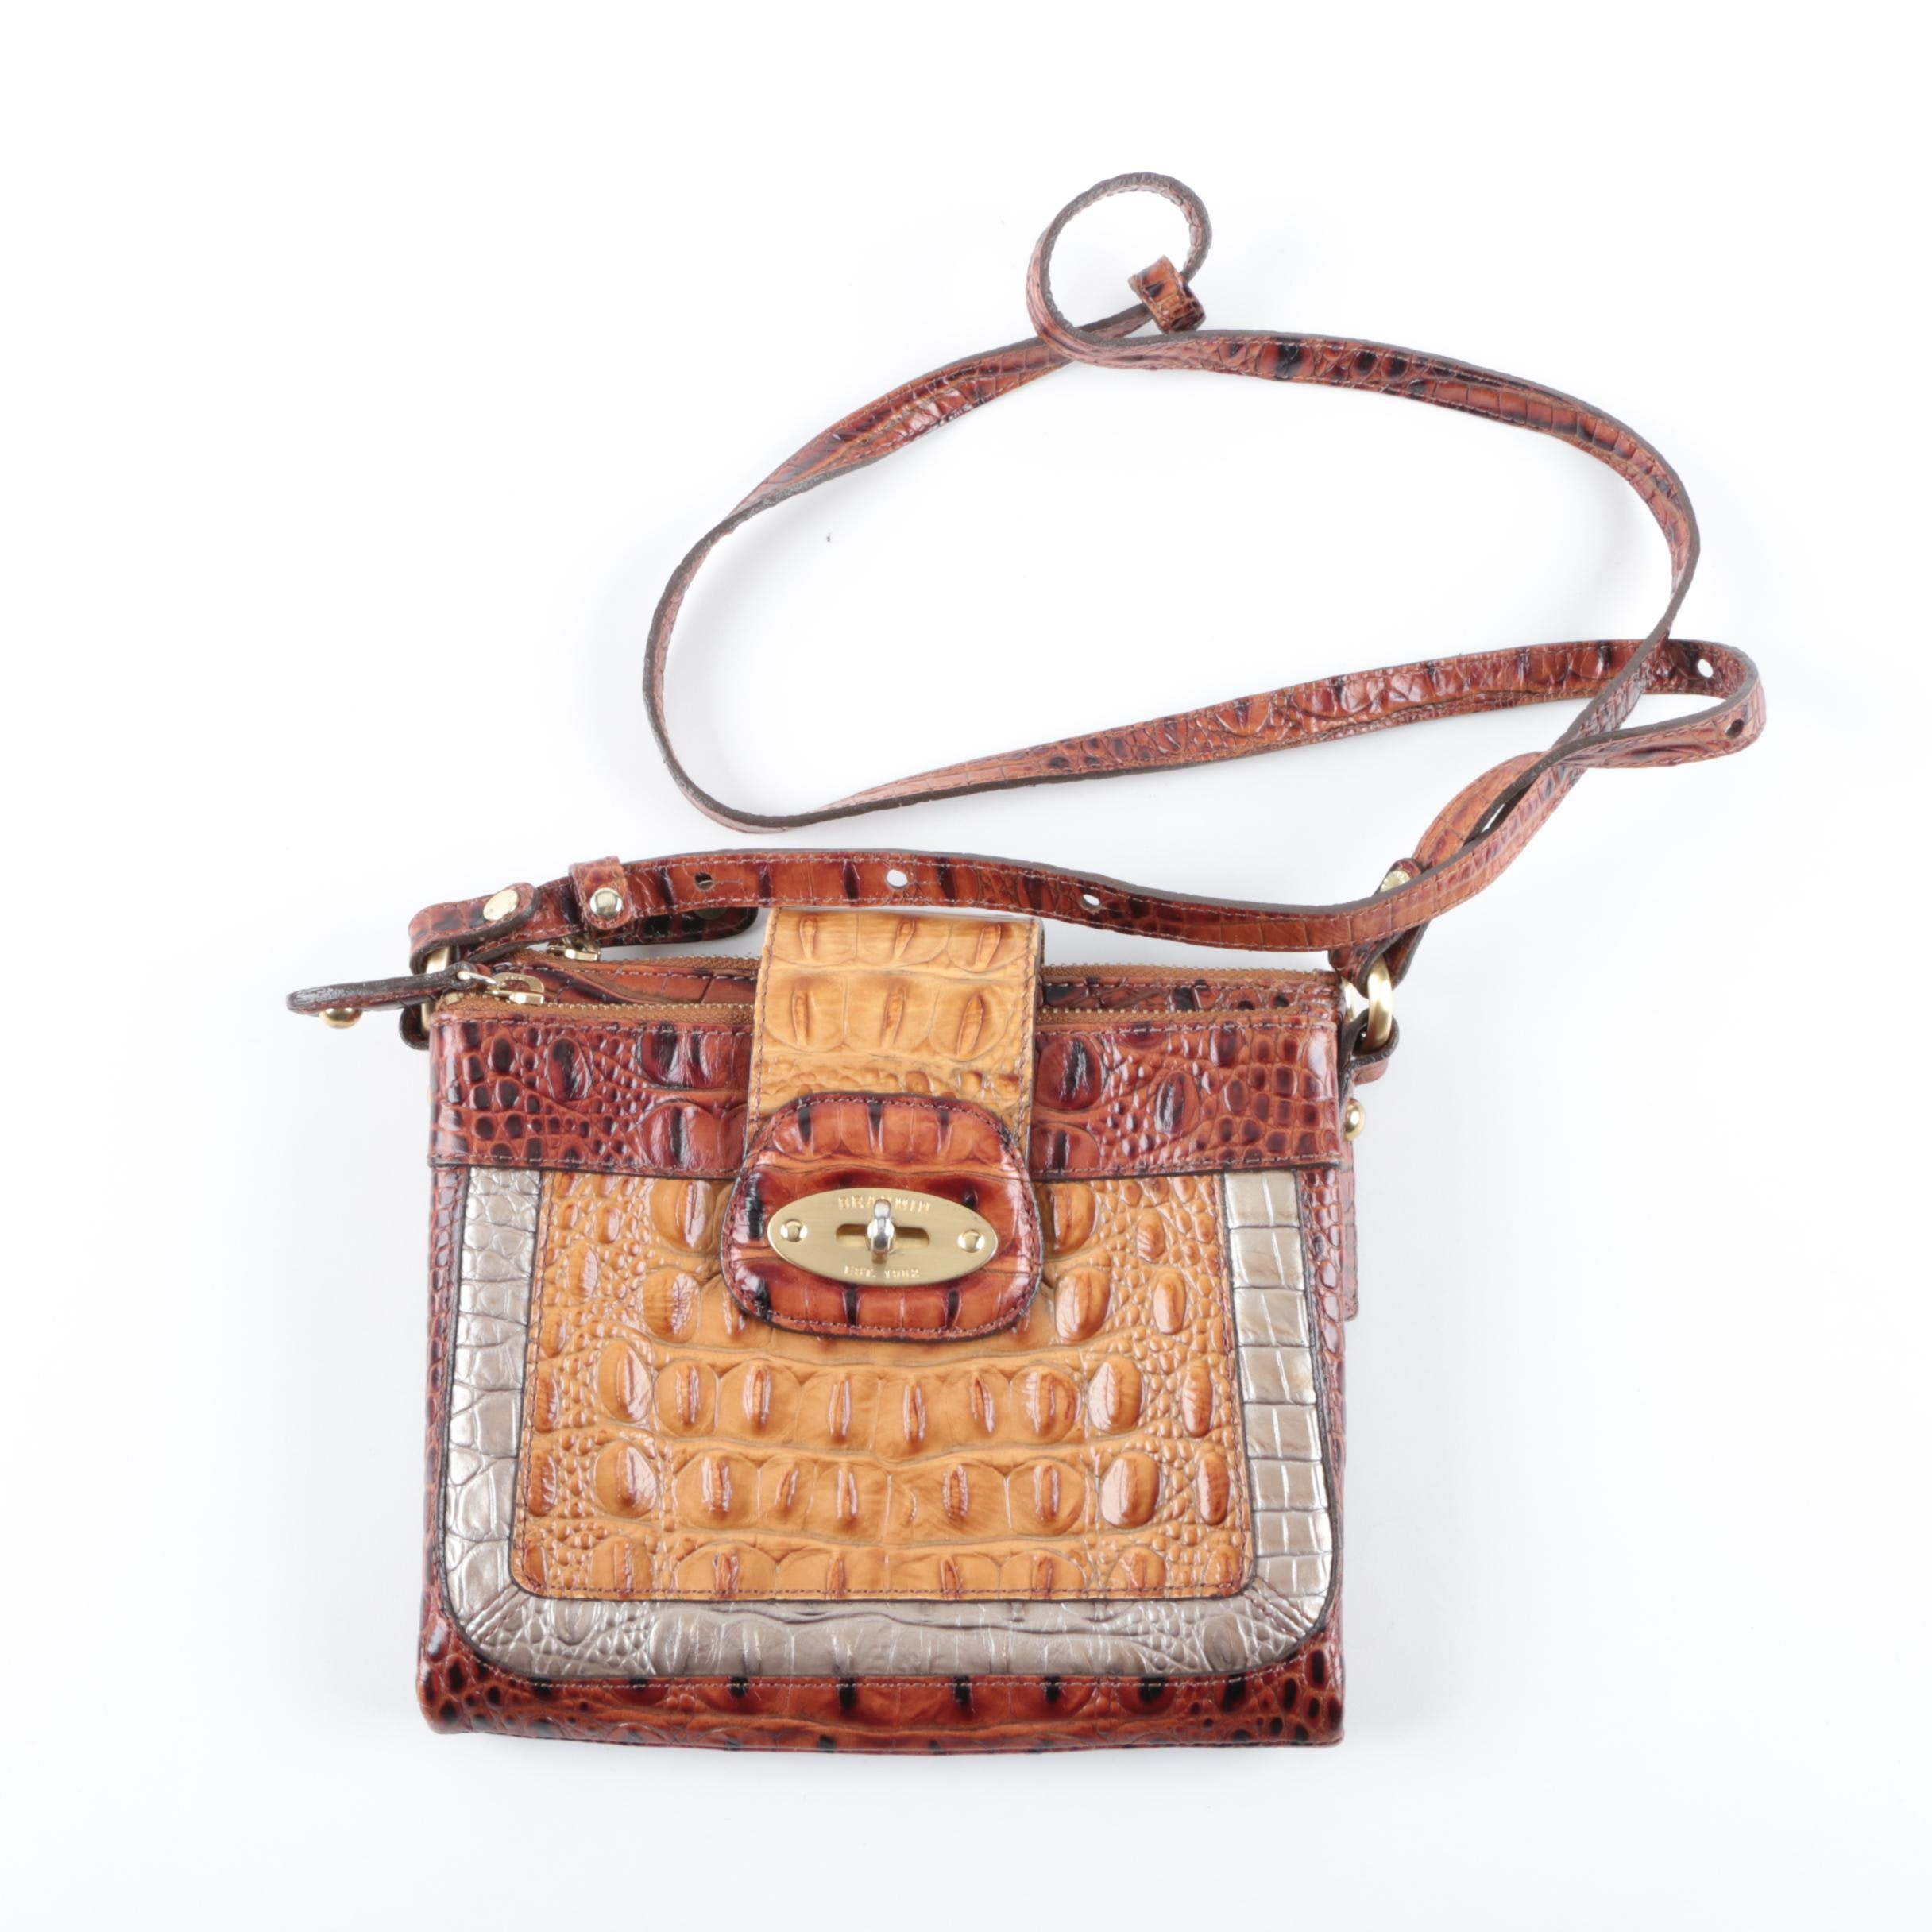 Brahmin Faux Crocodile Embossed Leather Crossbody Handbag